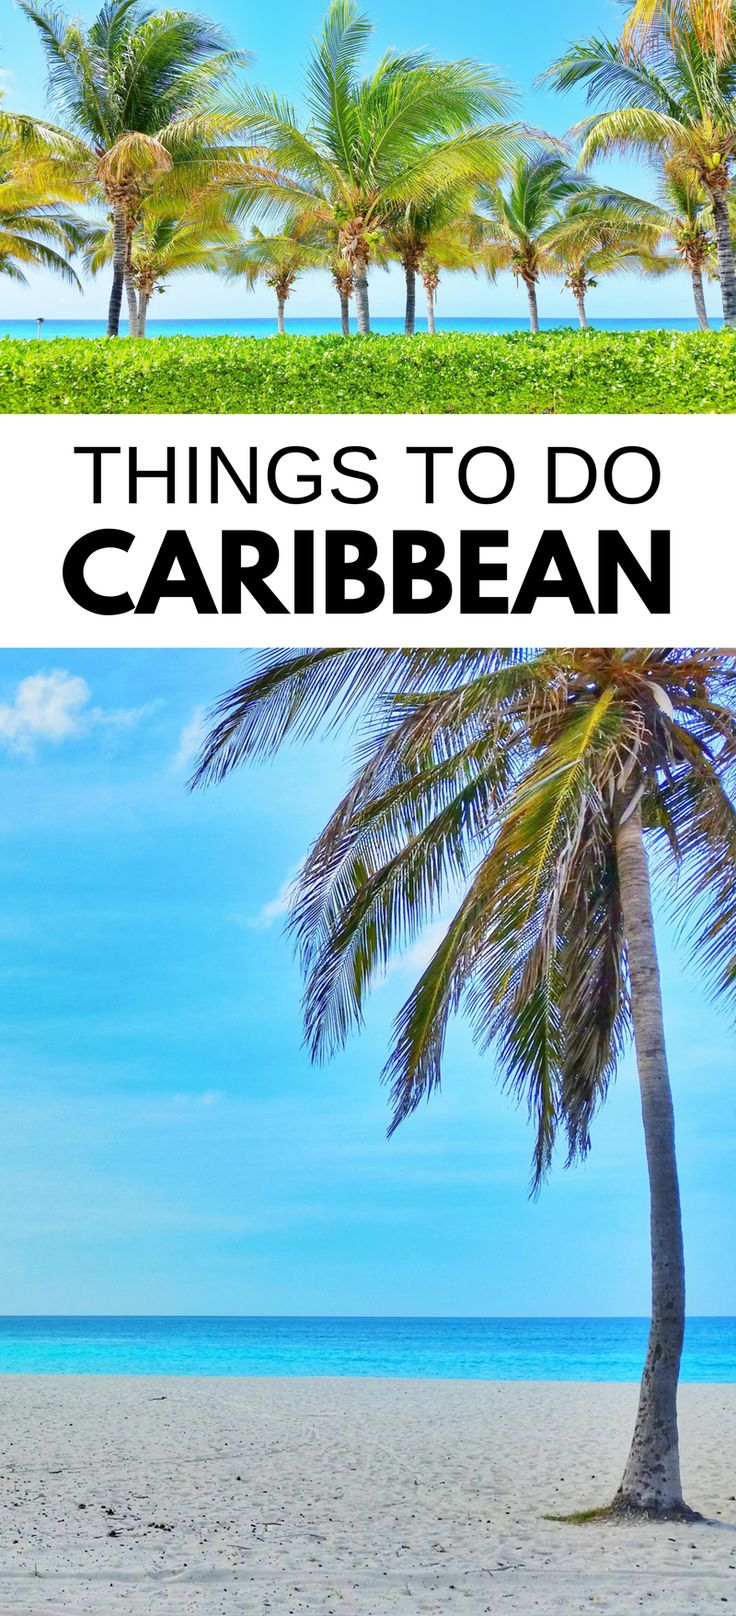 Things to do in Caribbean islands with vacation ideas on a Caribbean cruise, with map and list. Whether it's eastern, southern, western destination, a 4 day or 7 day itinerary, the ports your ship goes to will leave you with the best cruise memories when it's a first time! This type of vacation can be budget-friendly with beaches, food. Or go for resort day passes and shopping! ;) So book those excursions, and get to thinking about that checklist of what to pack and what to wear on a cruise…